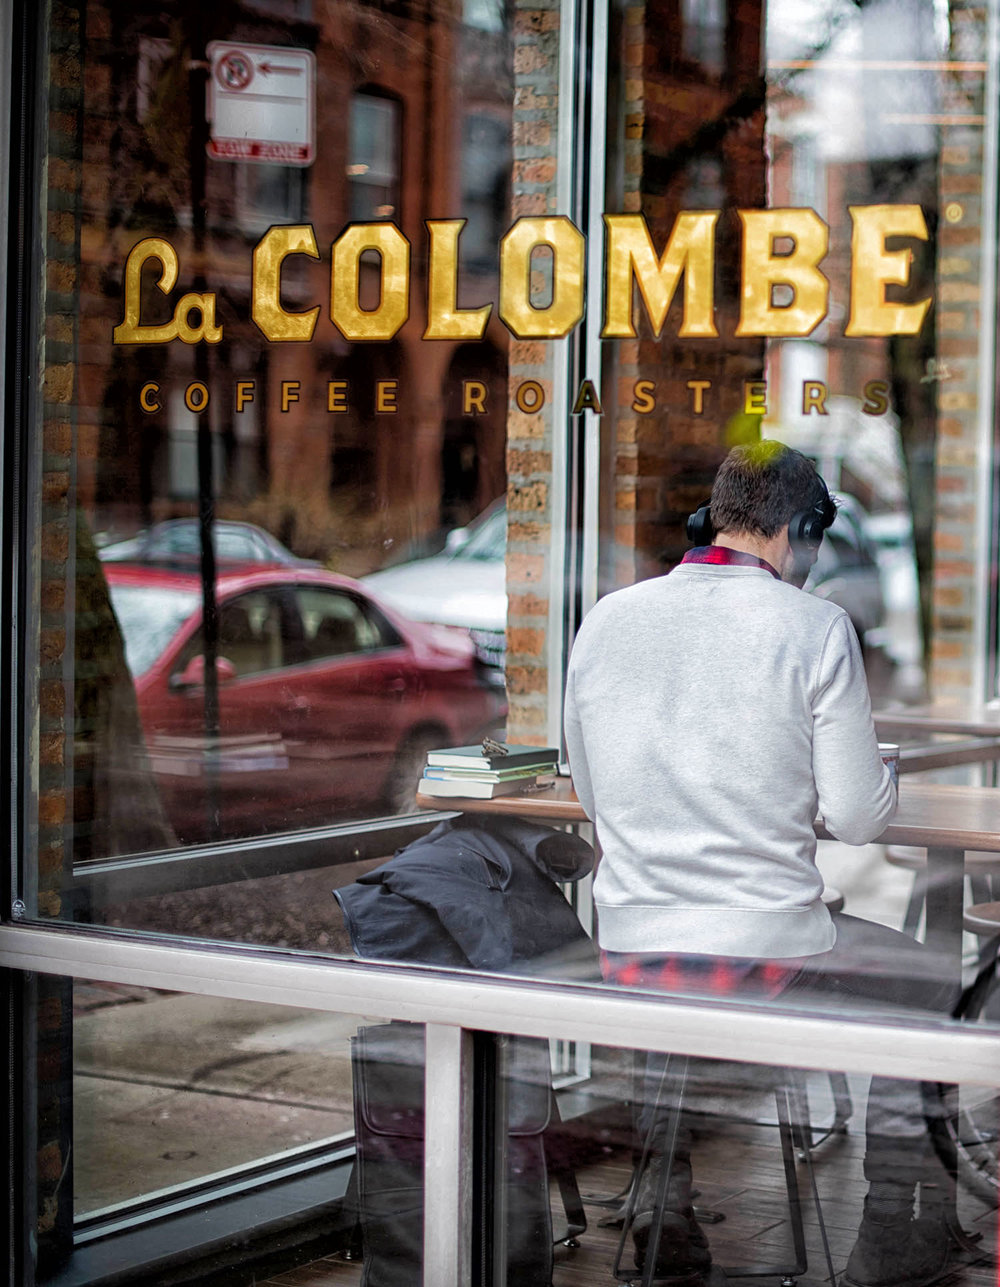 I posted this photo earlier this month. La Colombe liked it so much that they reposted it on their own Instagram page - 60K followers! Yay!